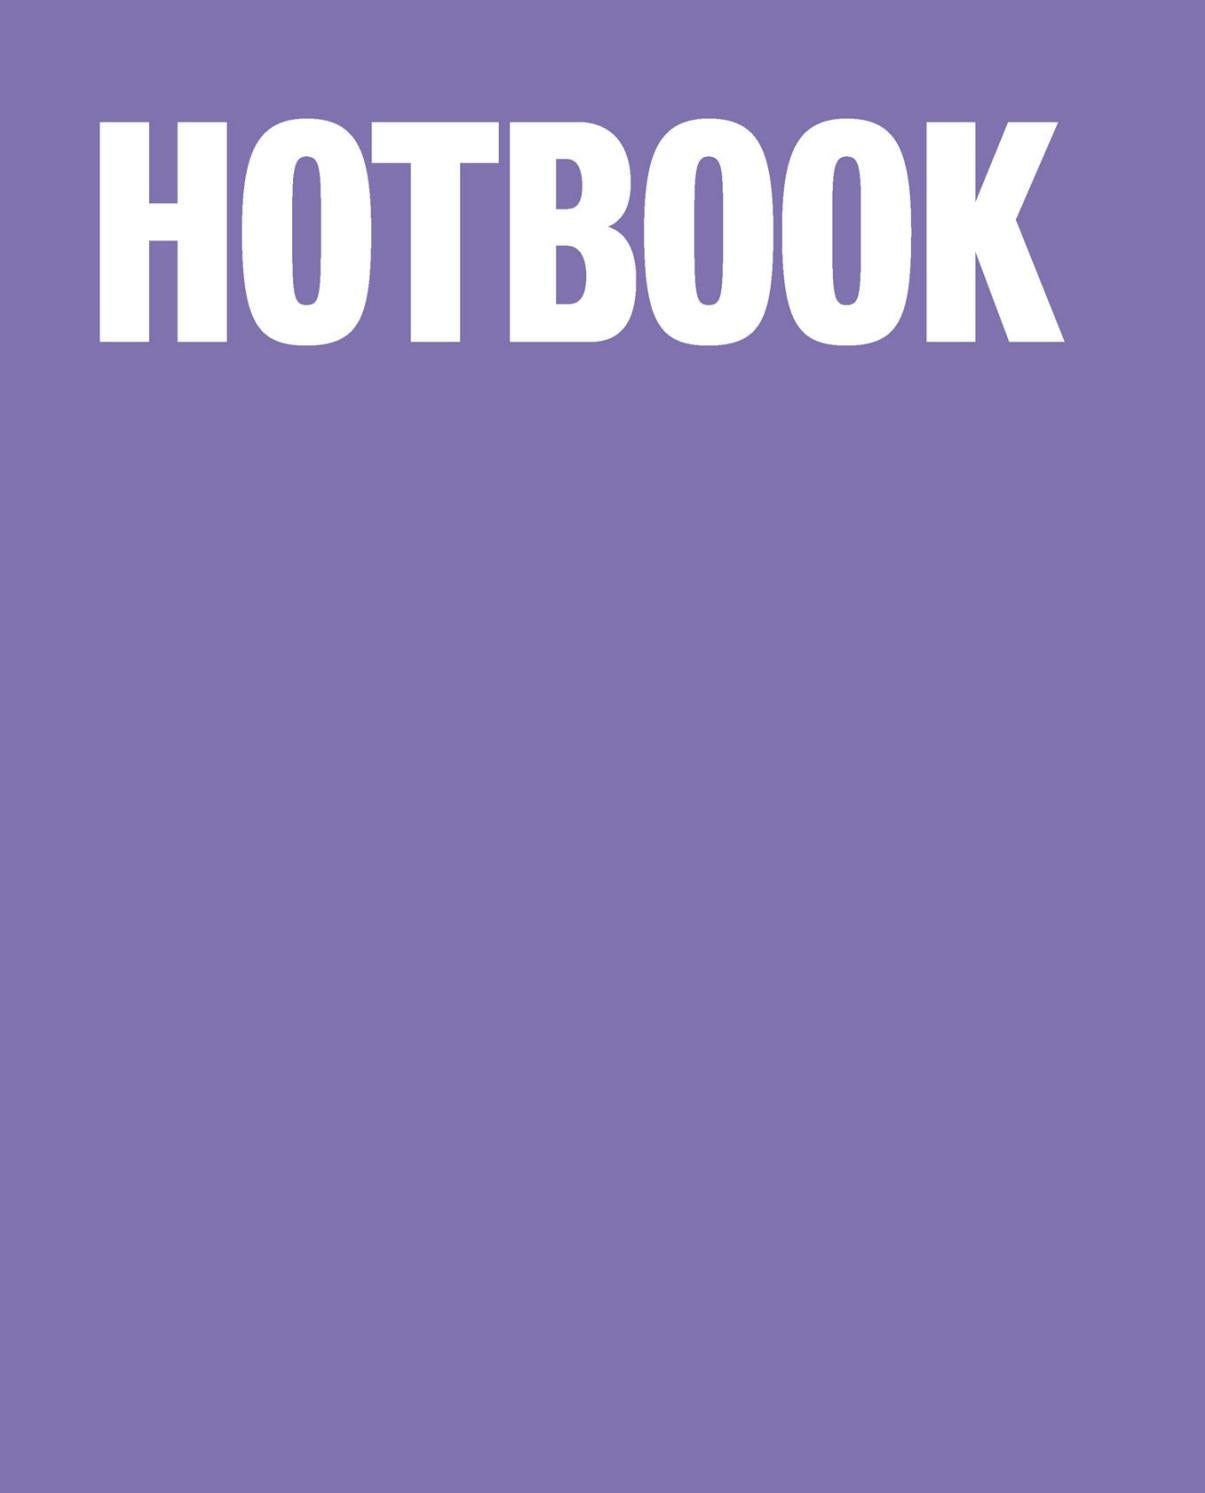 pretty nice 9a925 562d8 HOTBOOK 006 by HOTBOOK - issuu